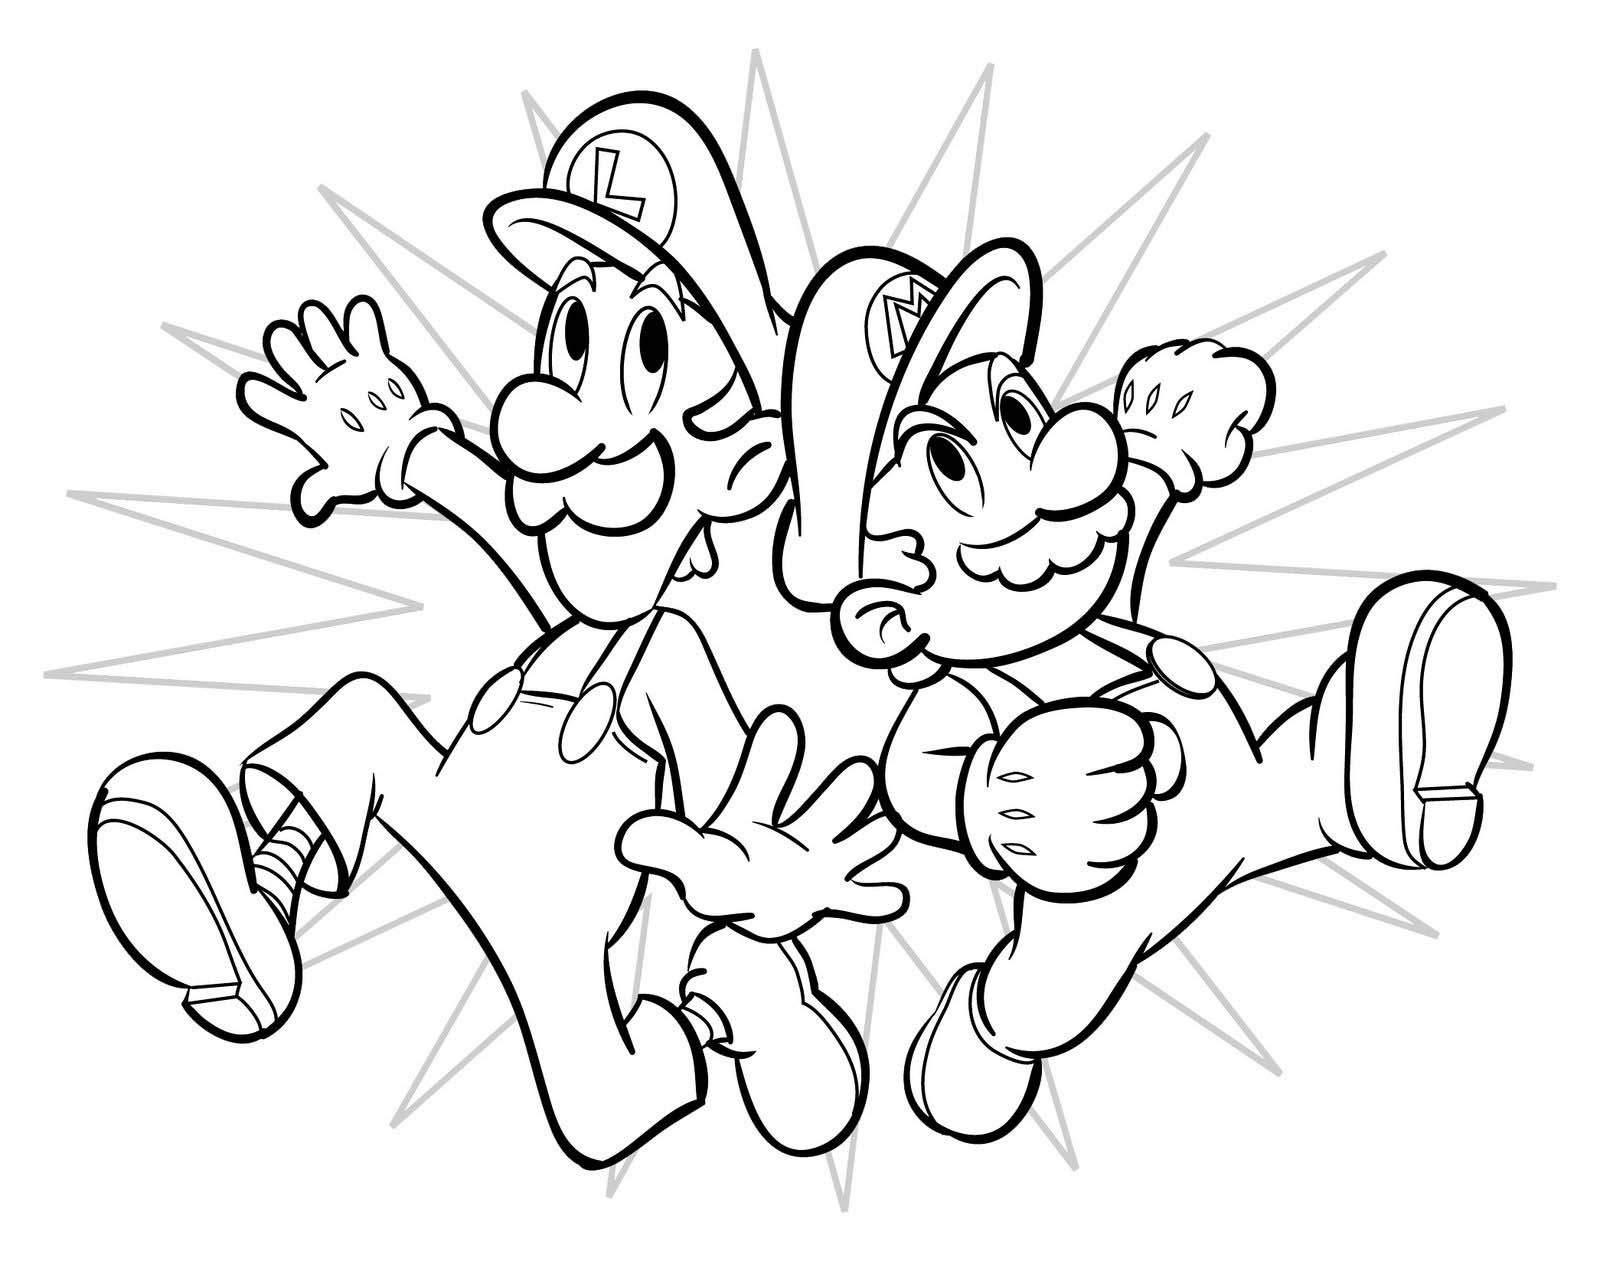 Mario And Luigi Superstar Saga Coloring Pages Boys Super Bros Free Online Printable